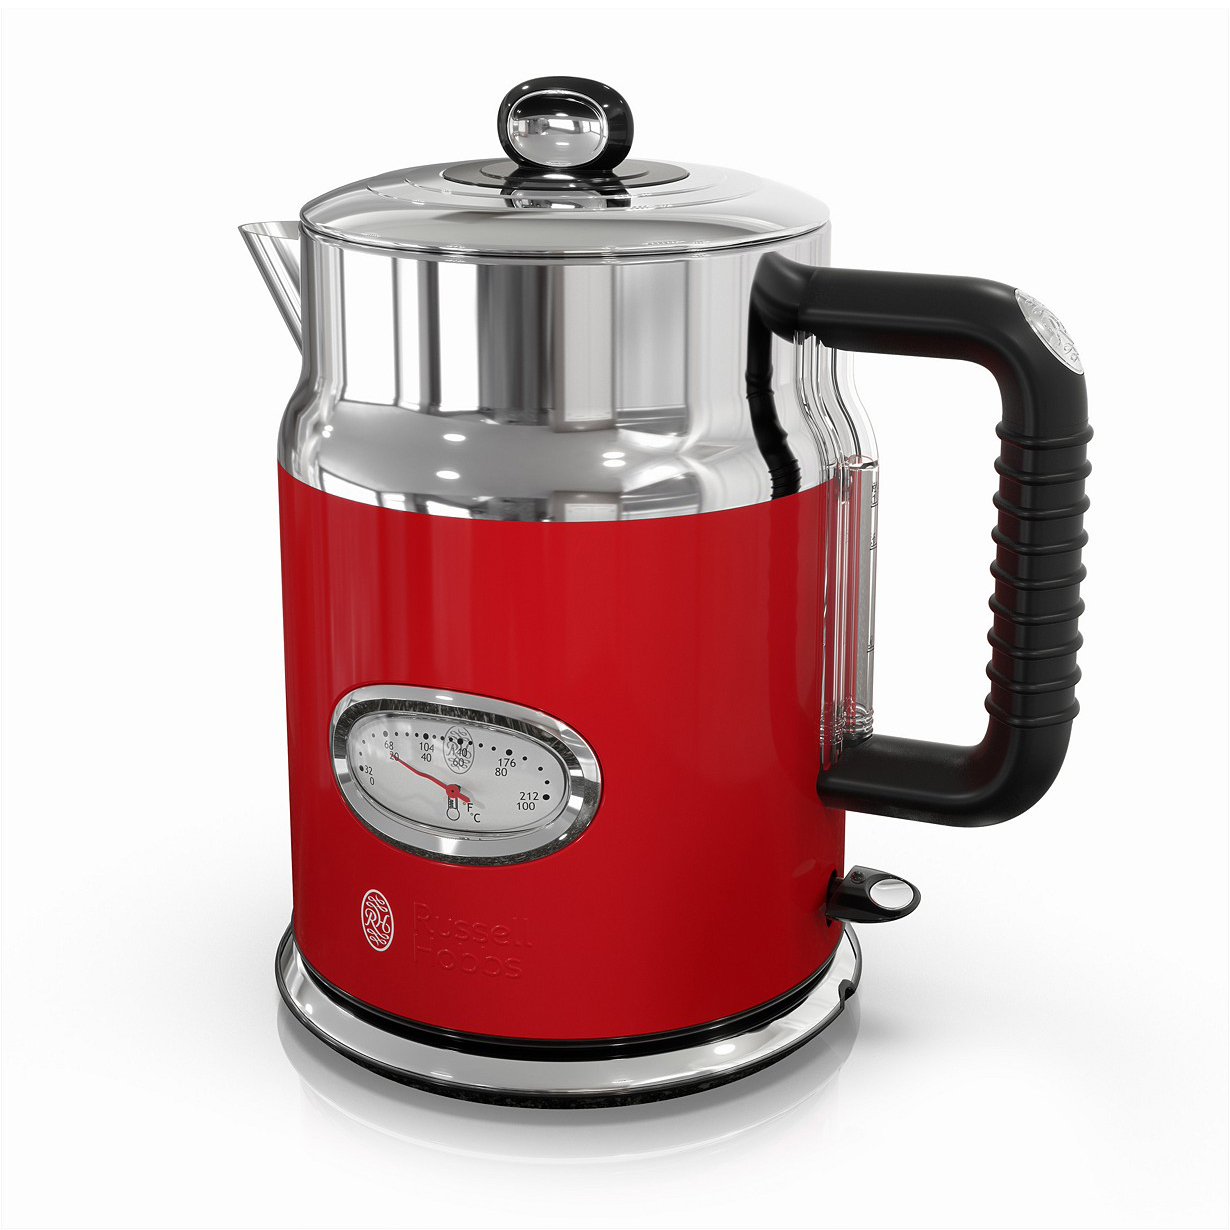 Russell Hobbs Retro Style Electric Kettle Macys photo